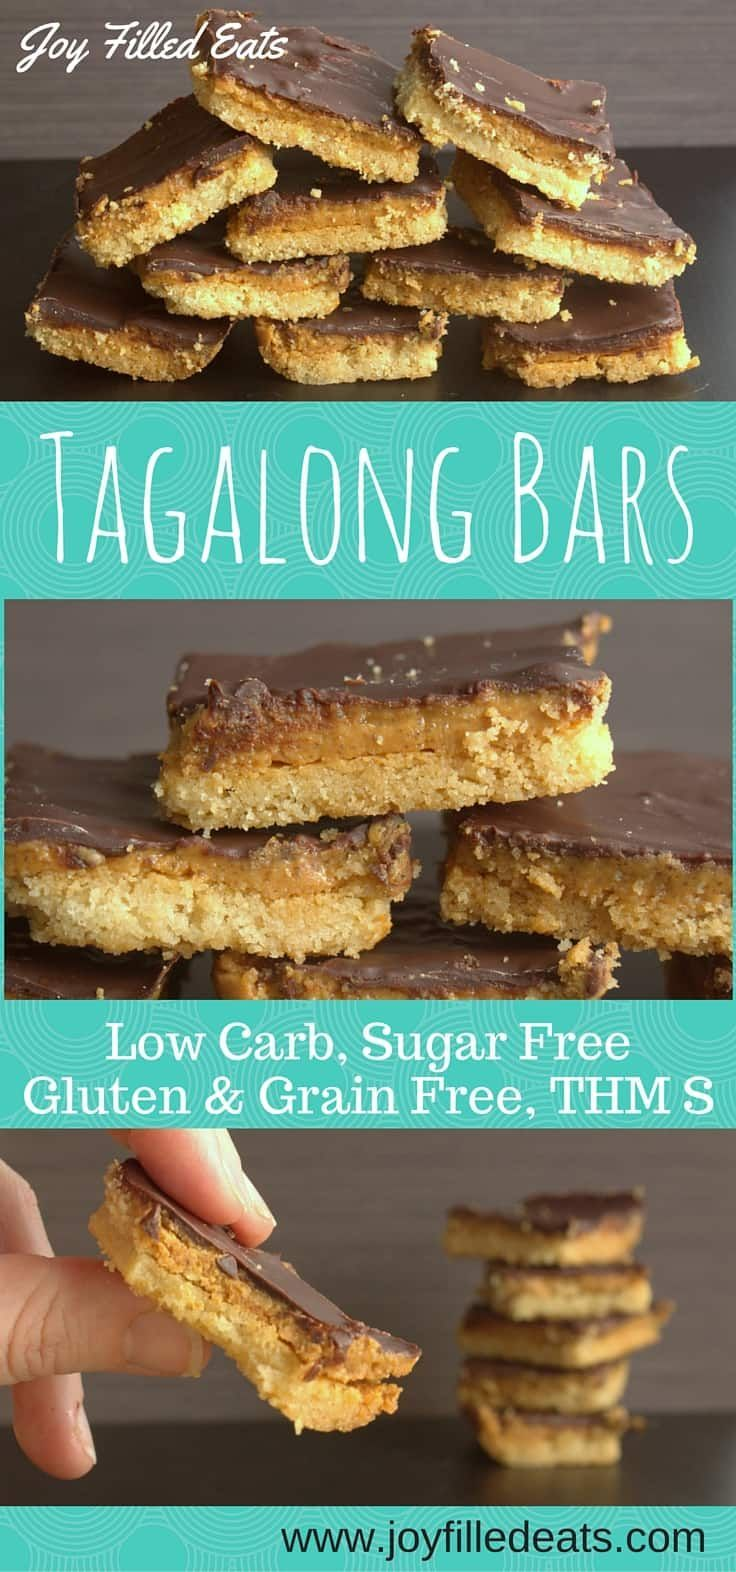 Tagalong Peanut Butter Cookie Bars - Low Carb, Keto, THM S, Grain-Free, Gluten-Free, Sugar-Free. Tagalong Cookies simplified to just 6 ingredients & ready in an hour! These chocolate peanut butter cookie bars taste like your favorite Girl Scout treat!